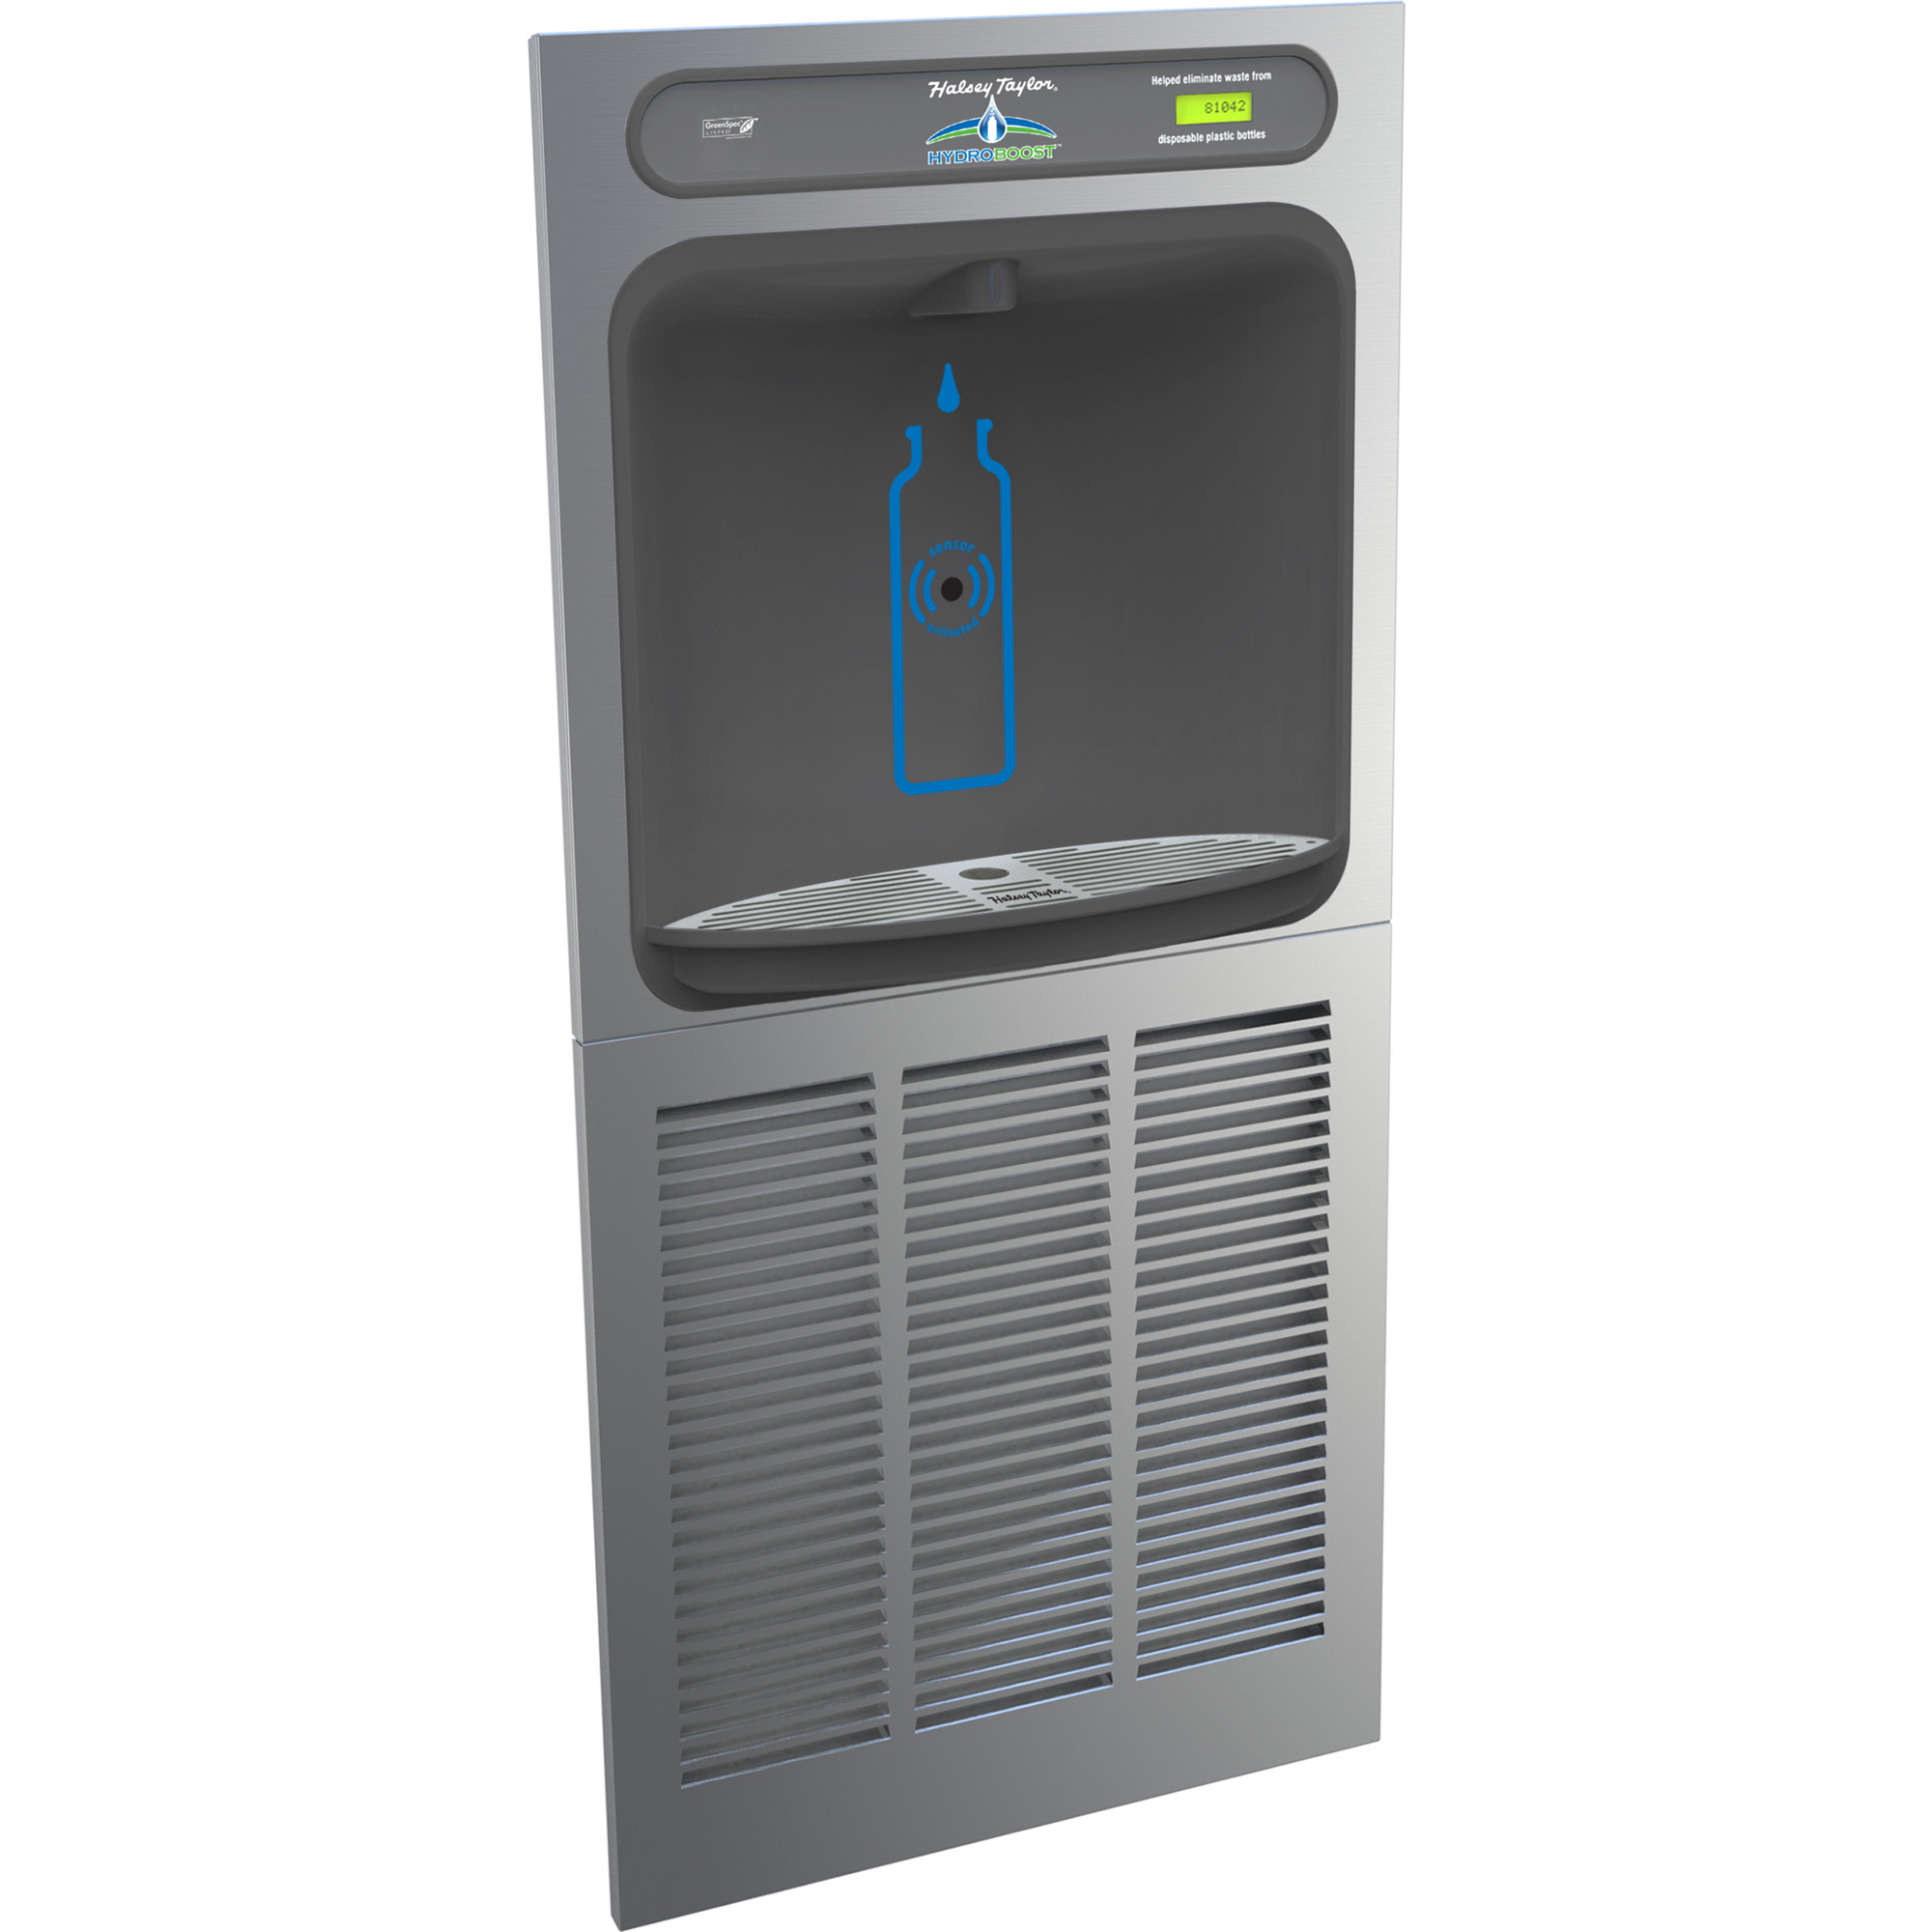 Halsey Taylor HTHBGRN8-NF | In-wall Bottle Filler | Filterless, High-efficiency chiller, Hands-free (comes with Mounting Frame)